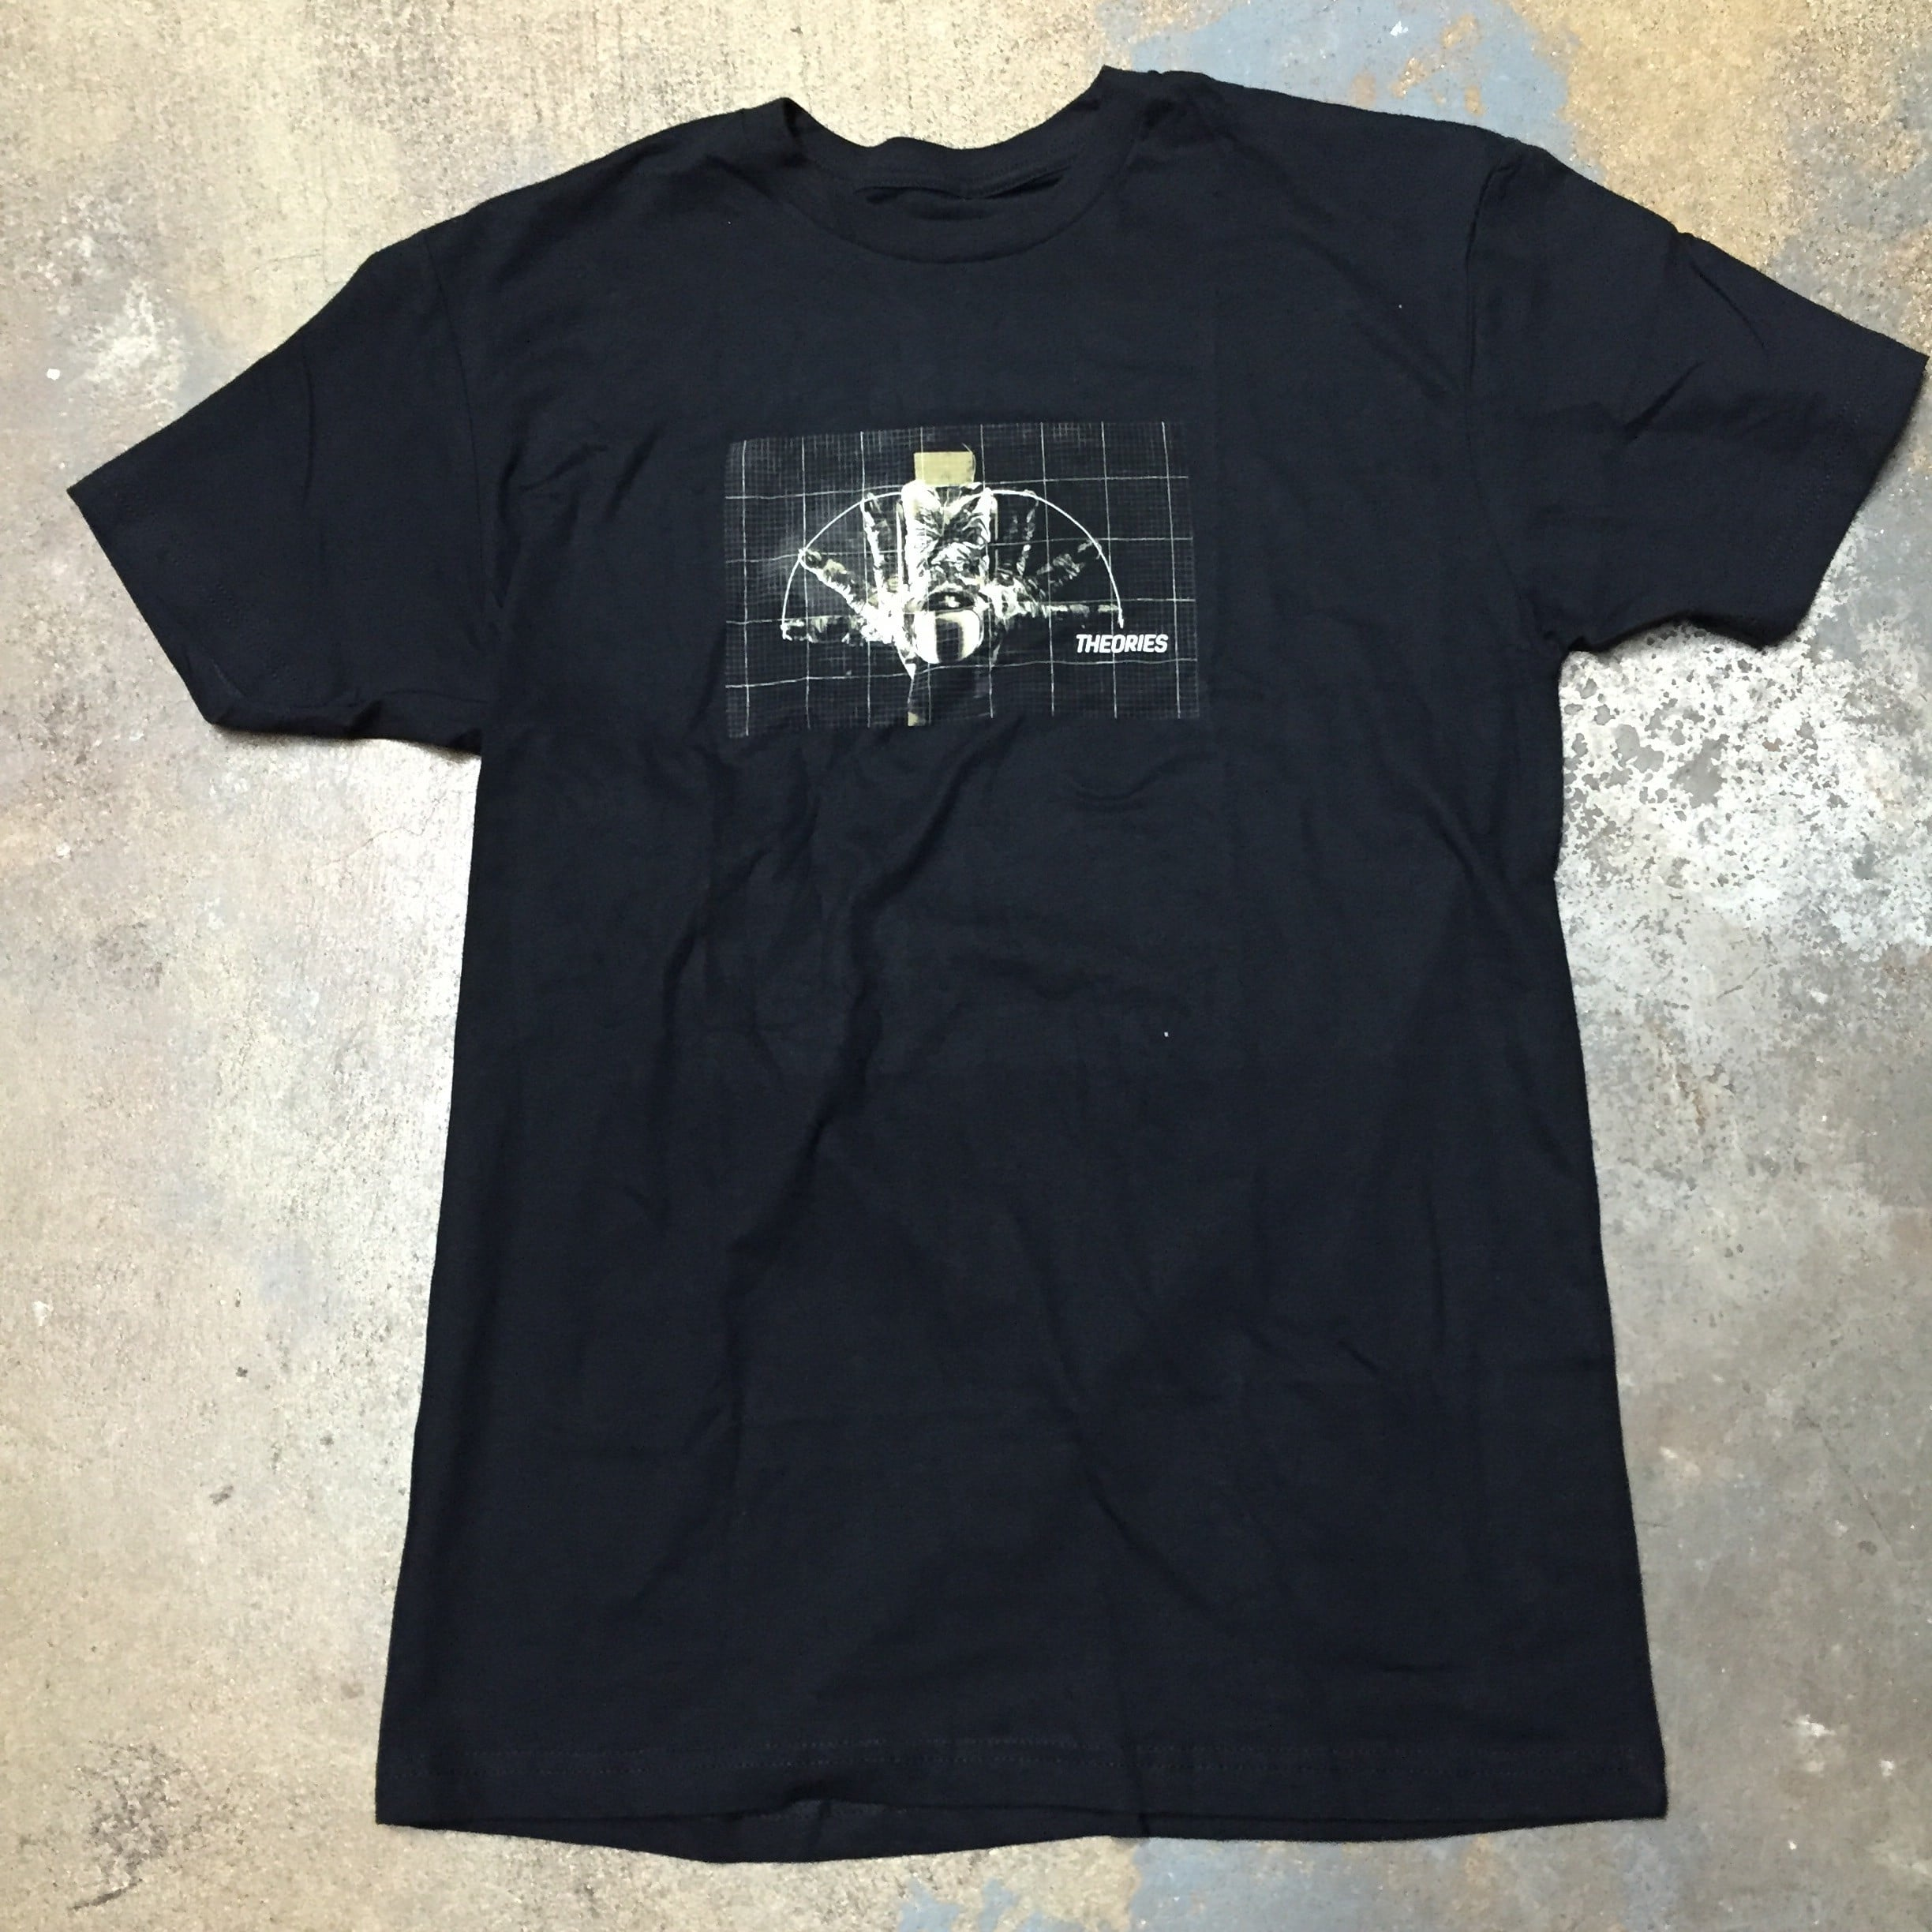 Theories New Dimension t-shirt